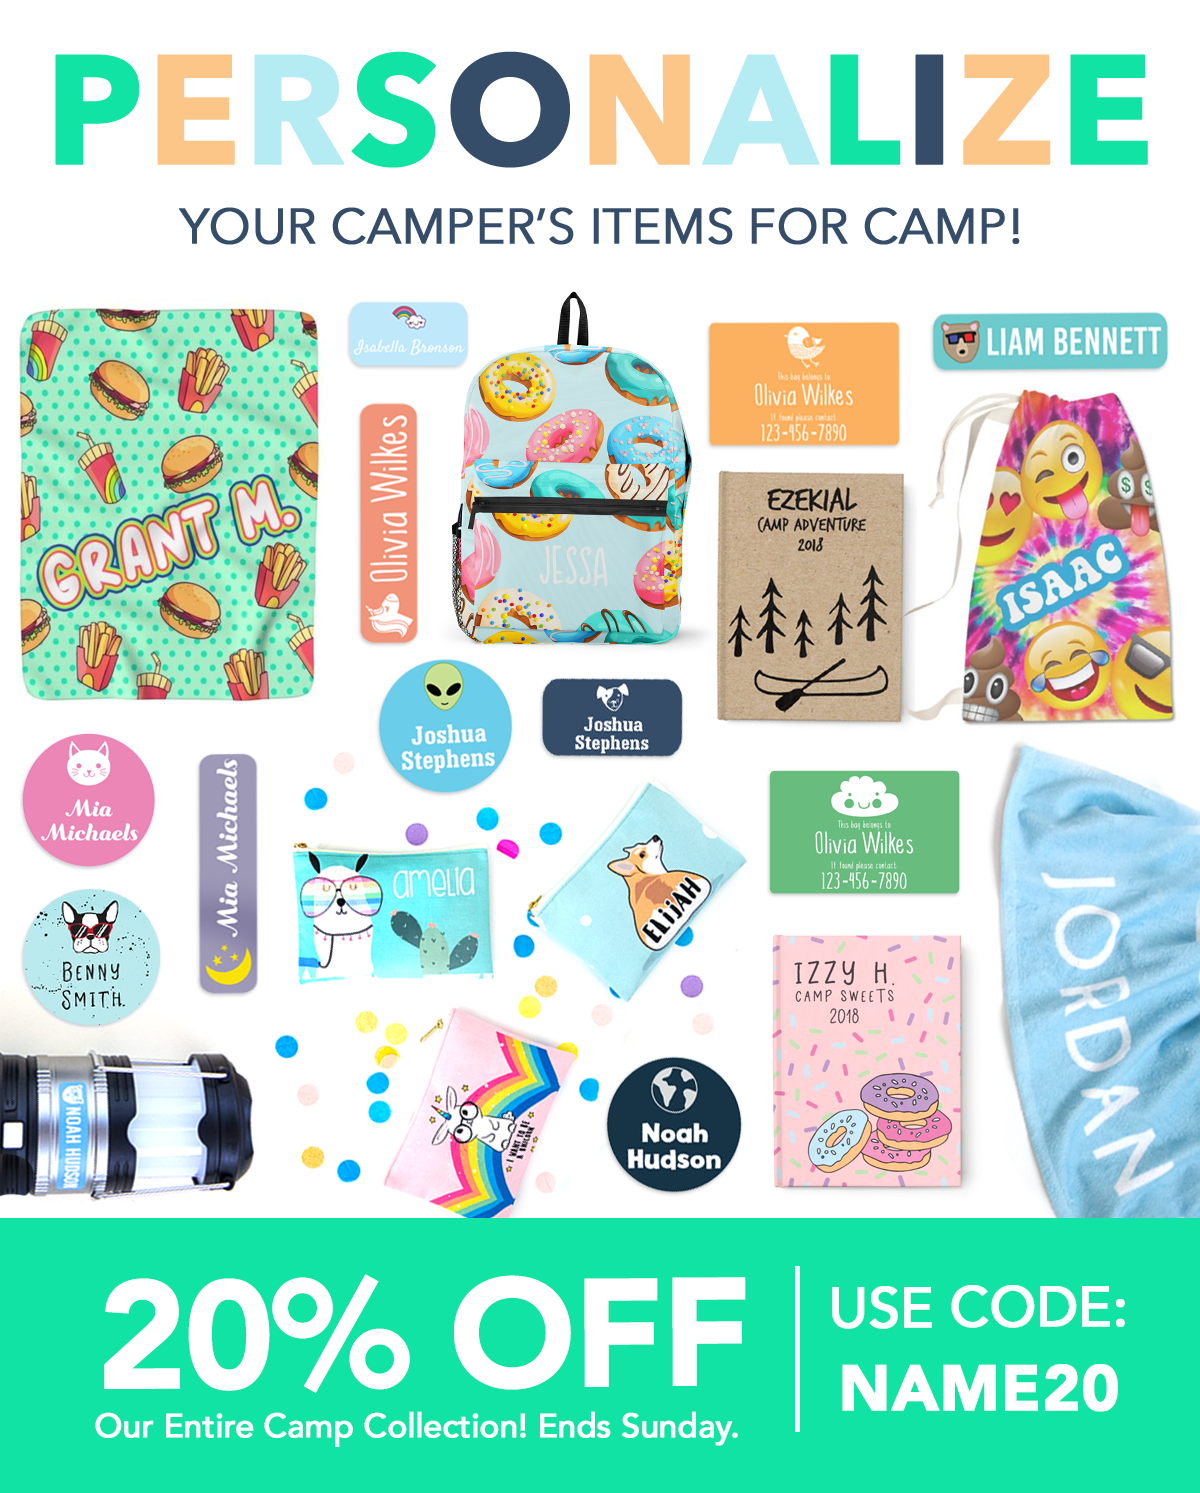 Get 20% off our Camp Collection with Code: NAME20